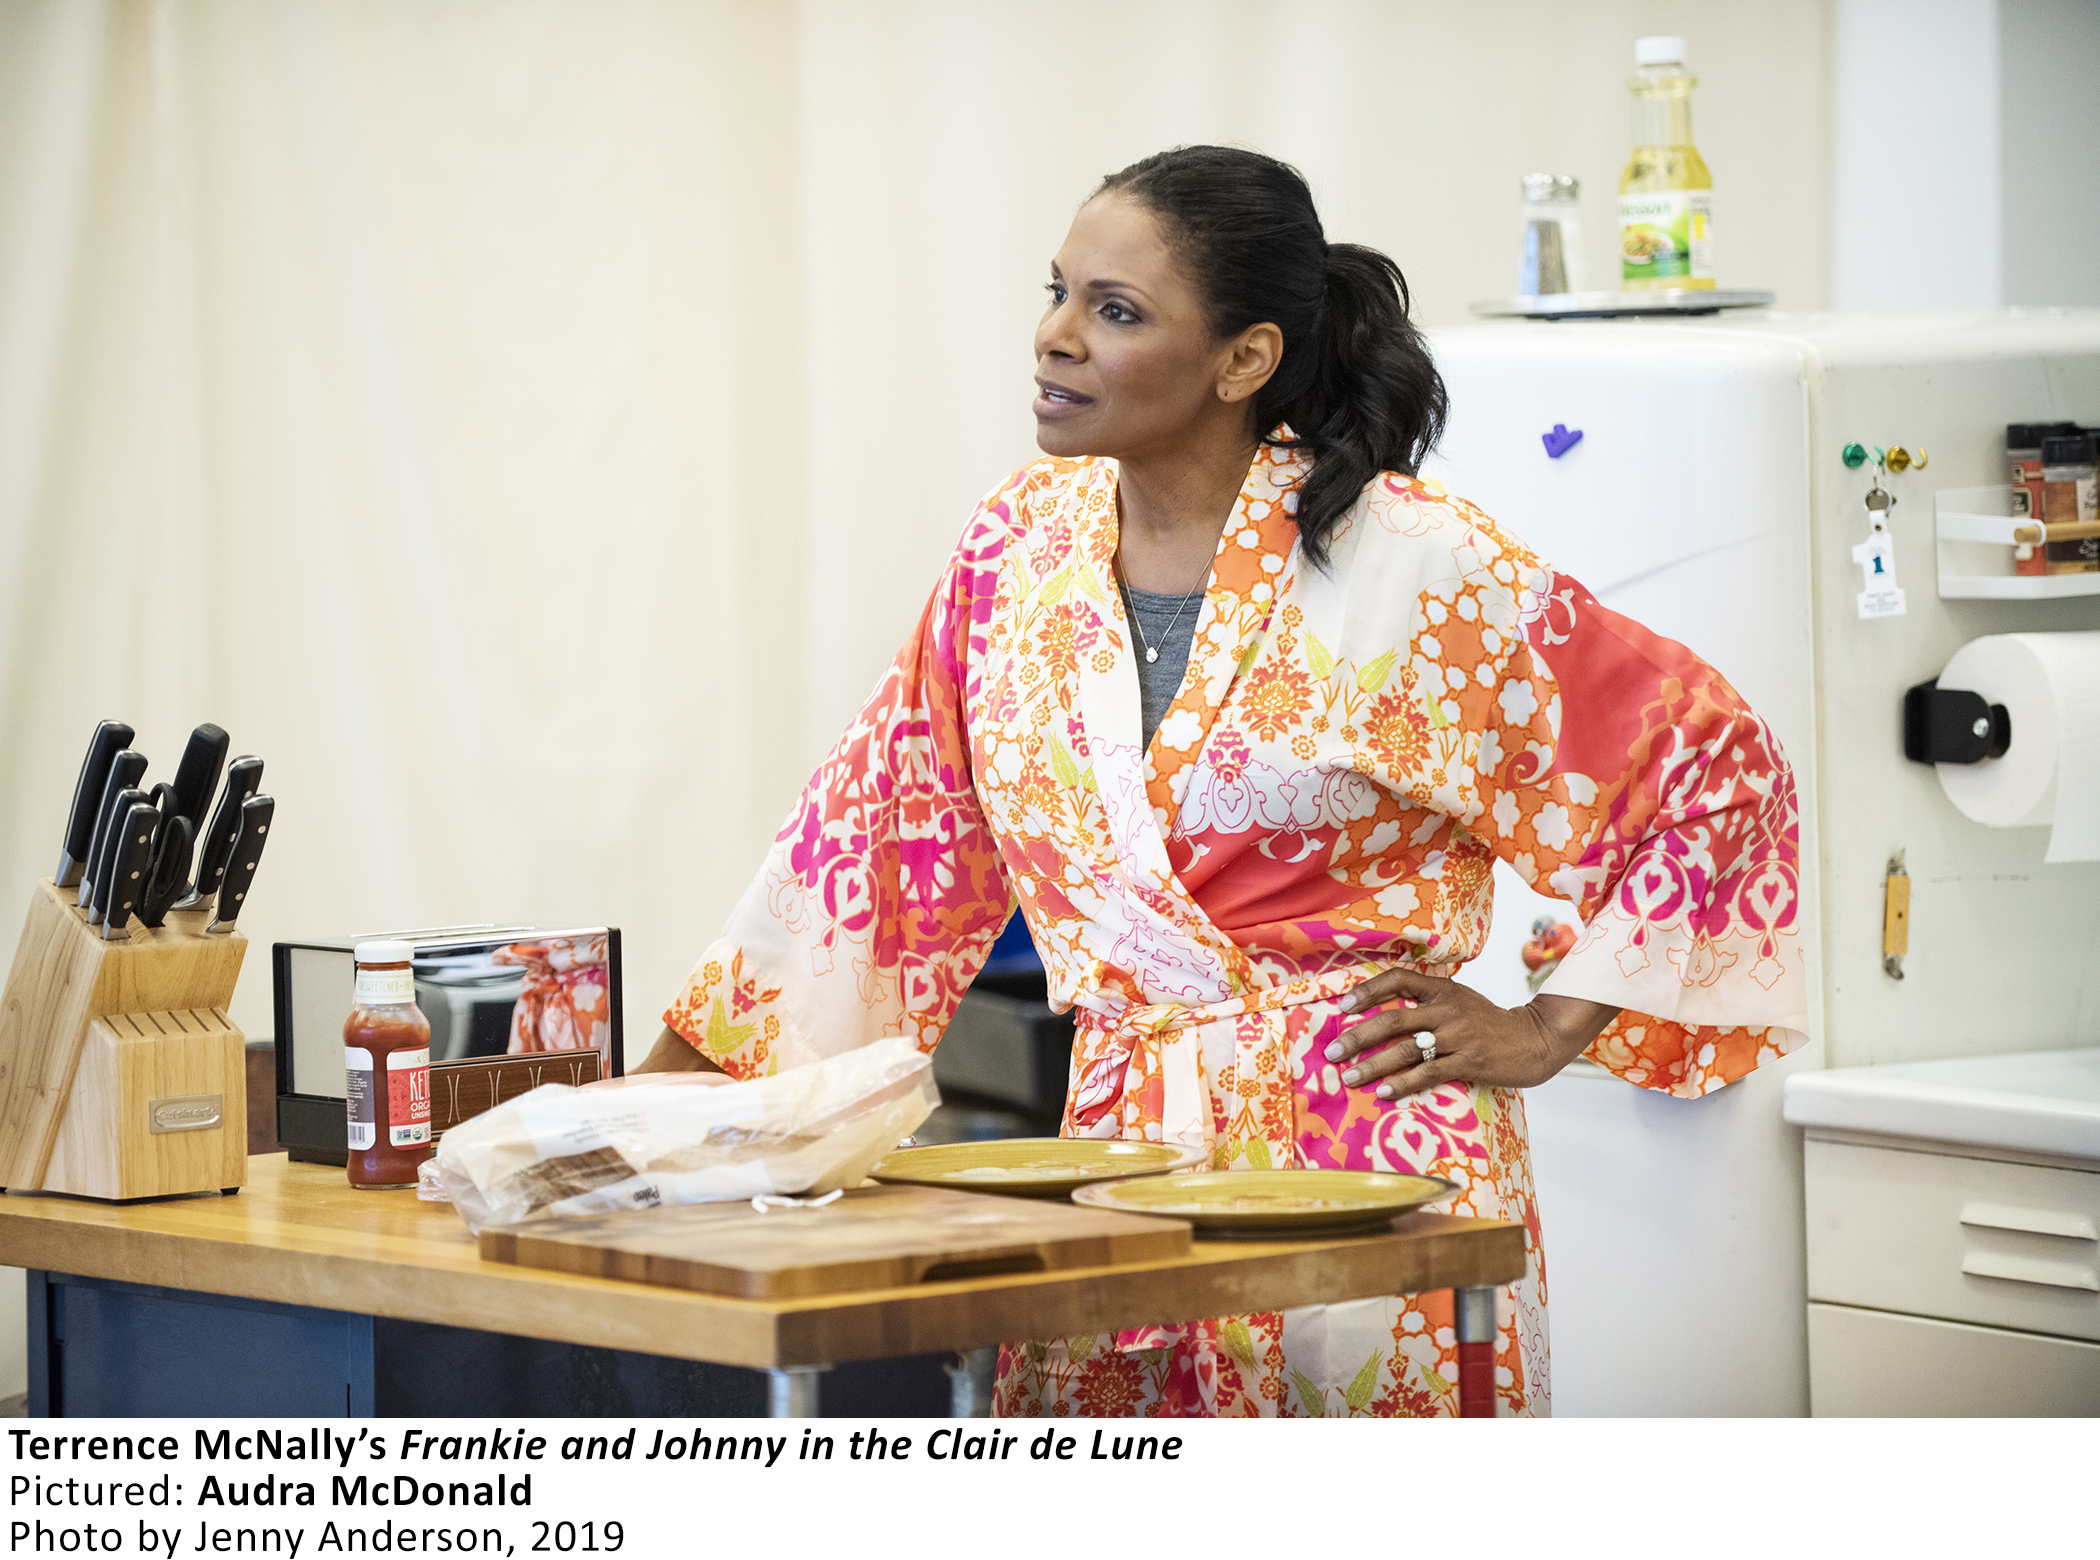 Audra McDonald in Frankie and Johnny